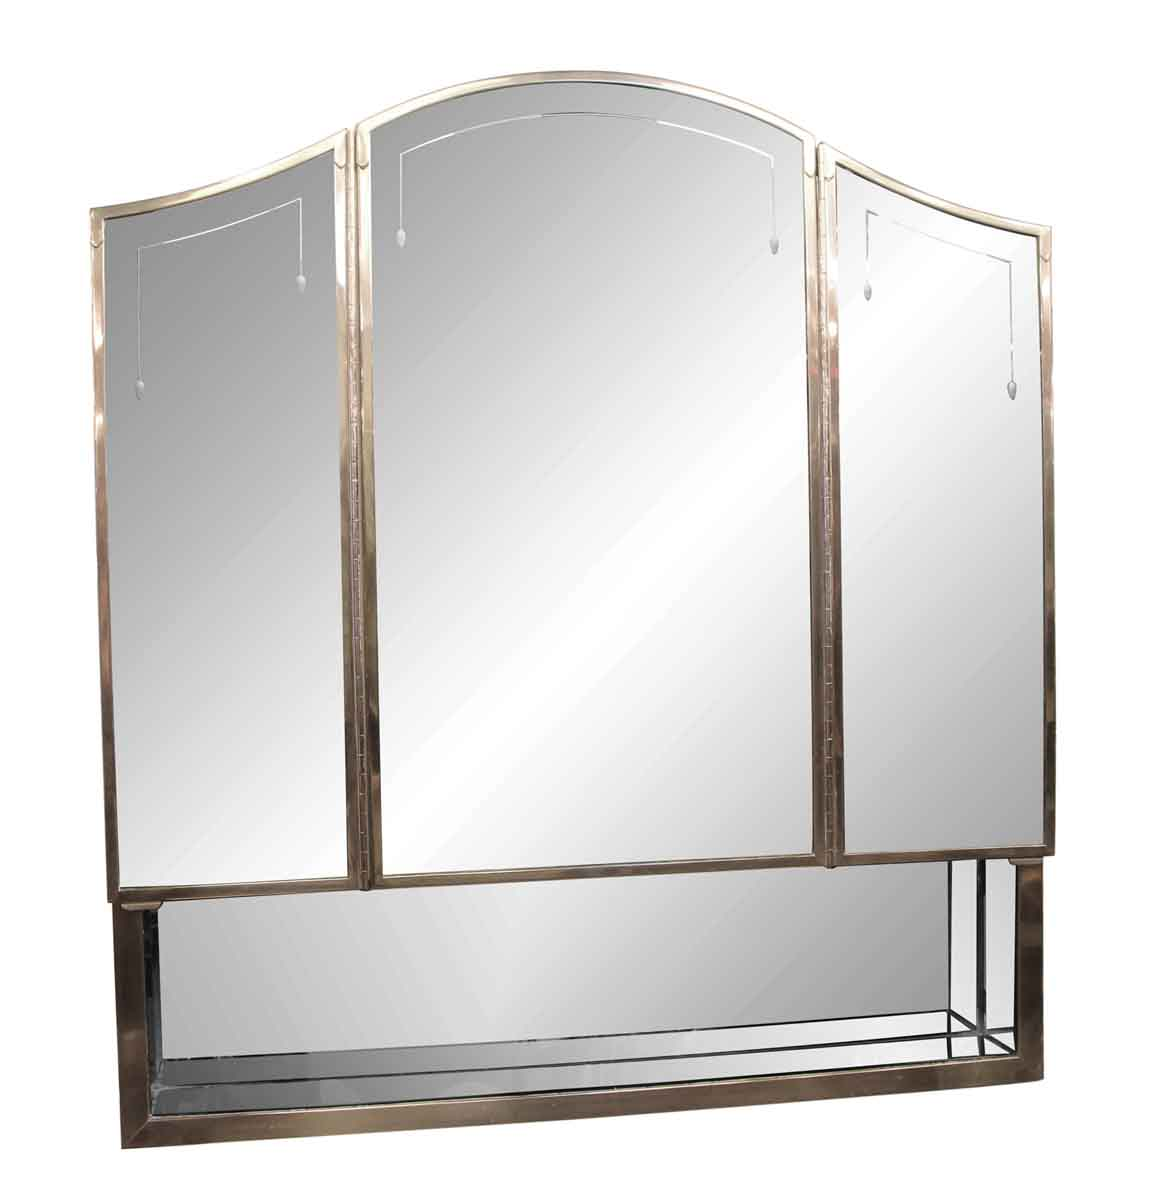 Art Deco Medicine Cabinet With Etched Triple Mirror And Nickel Frame From The Waldorf Astoria Olde Good Things